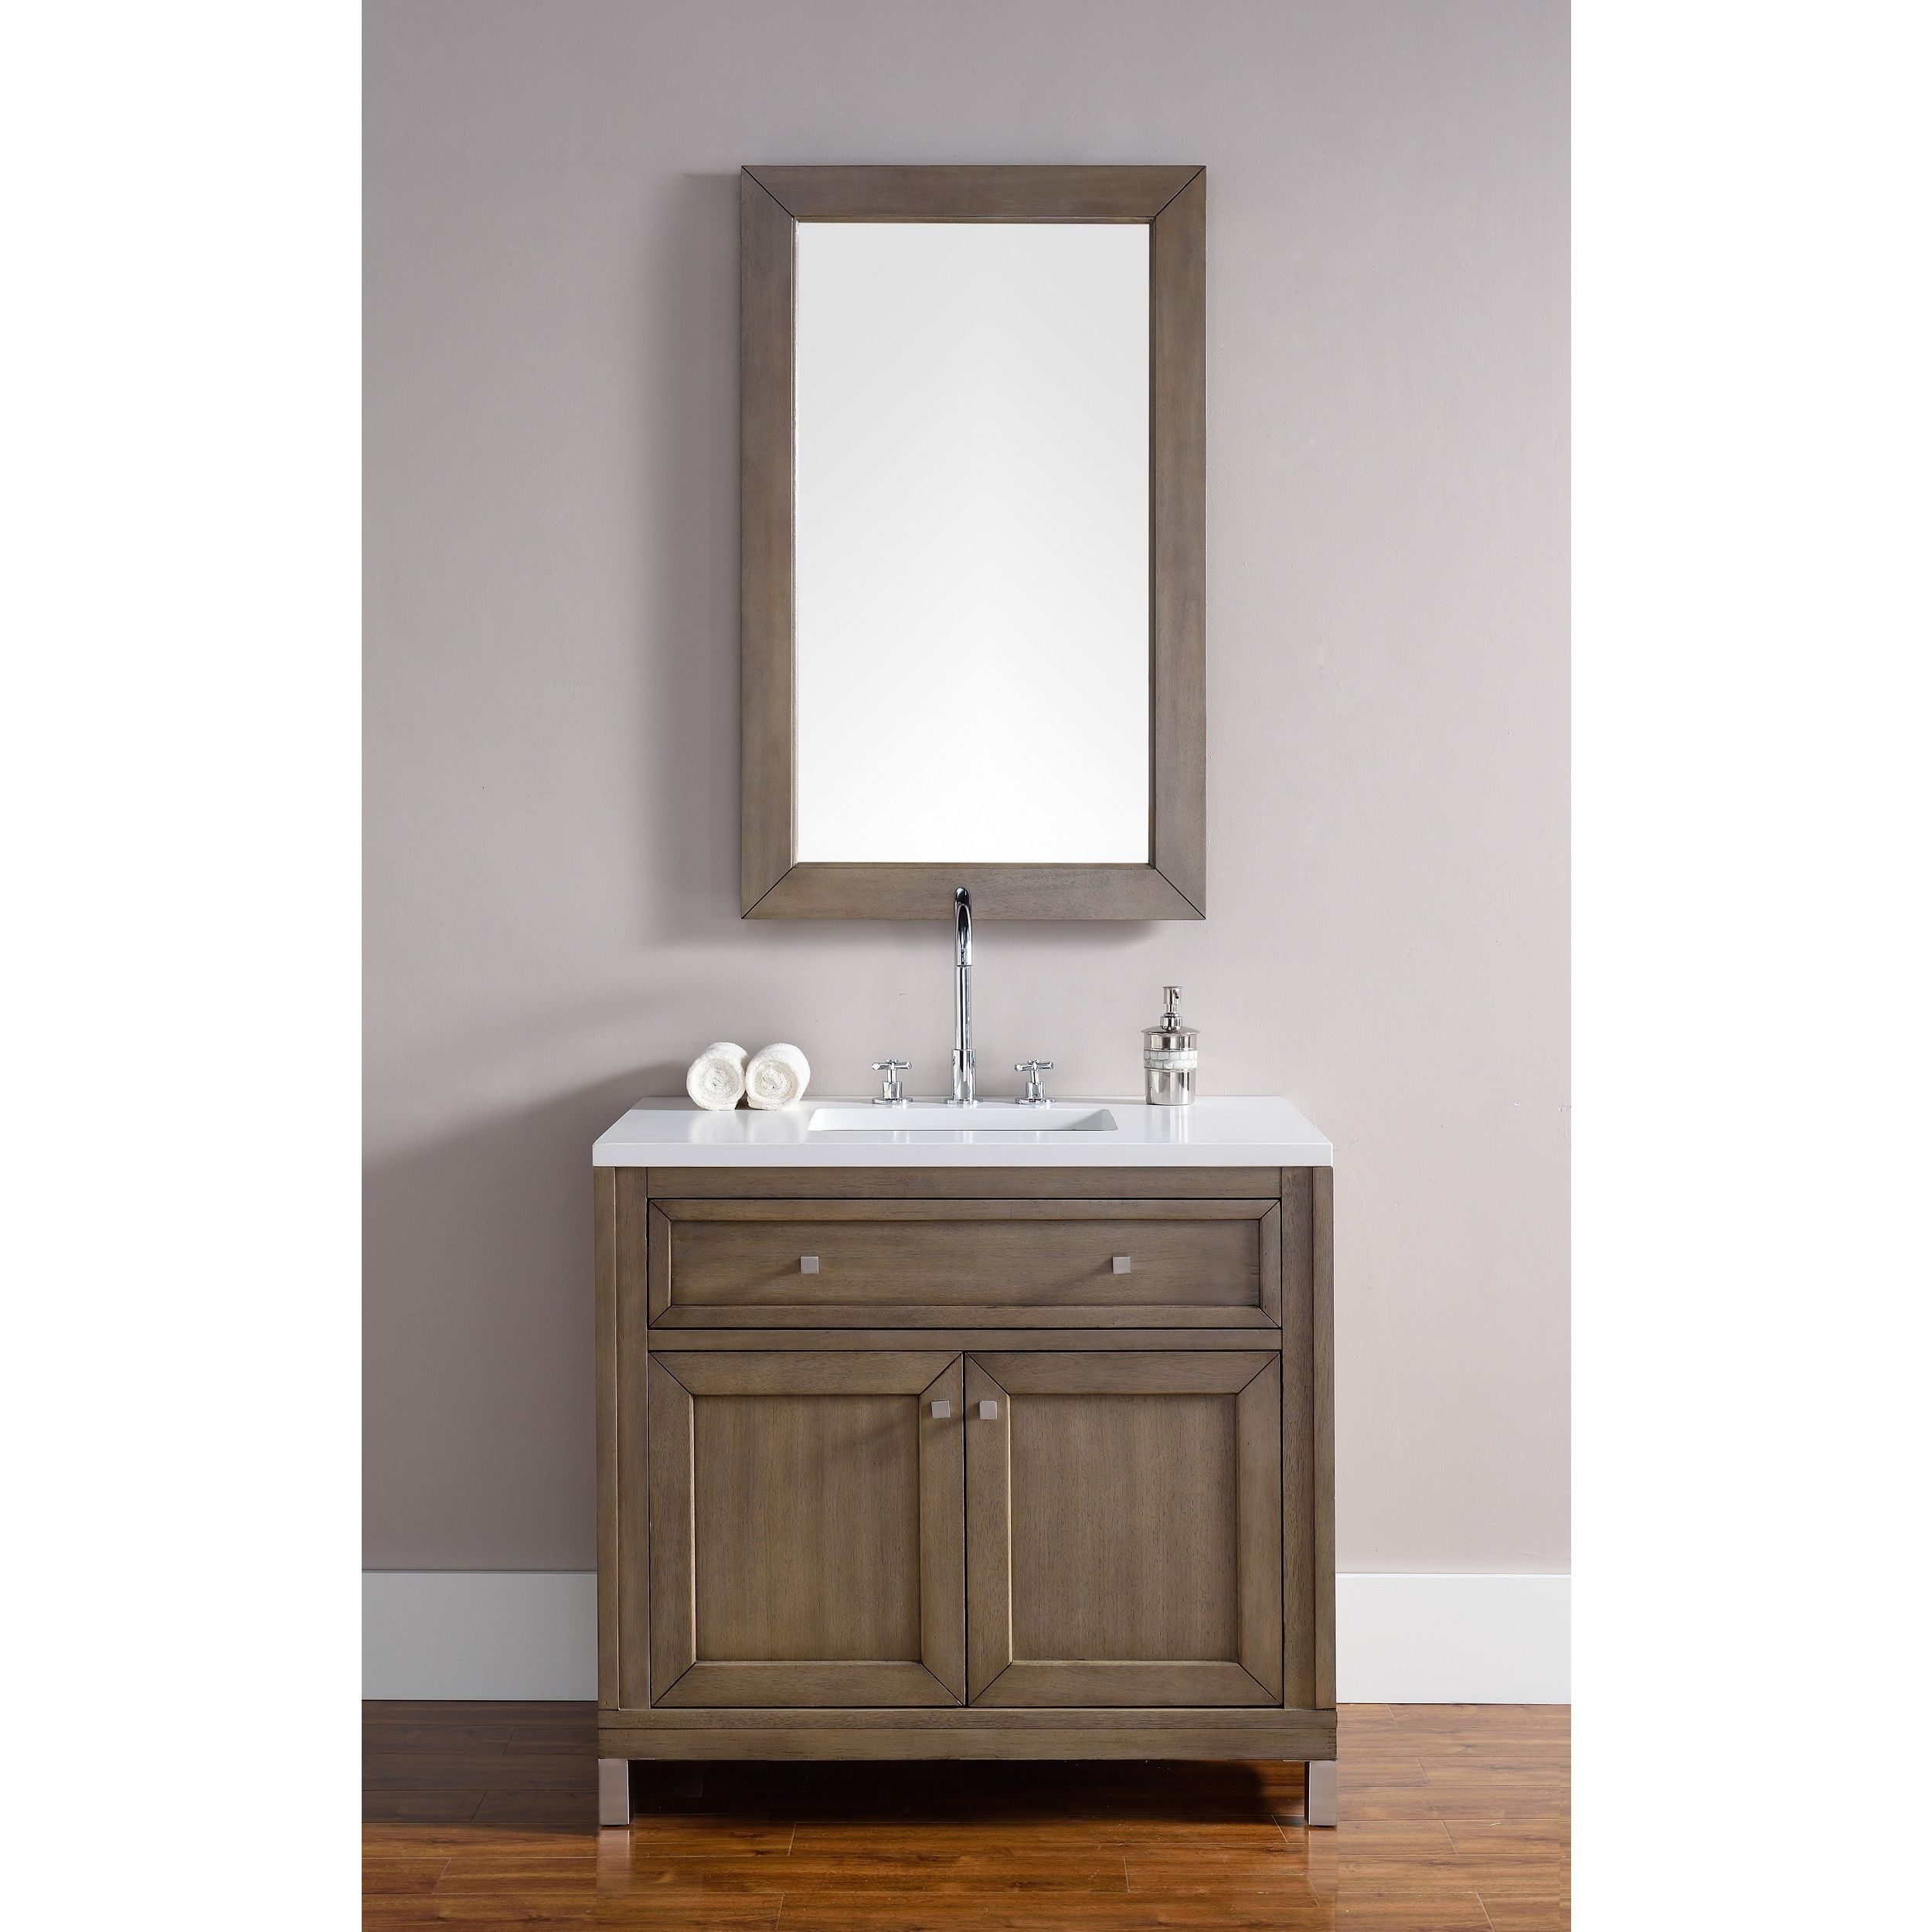 d w kessler single furniture sink dimensions inch overall vanity chest hutch antique htm with reproduction l h mirror